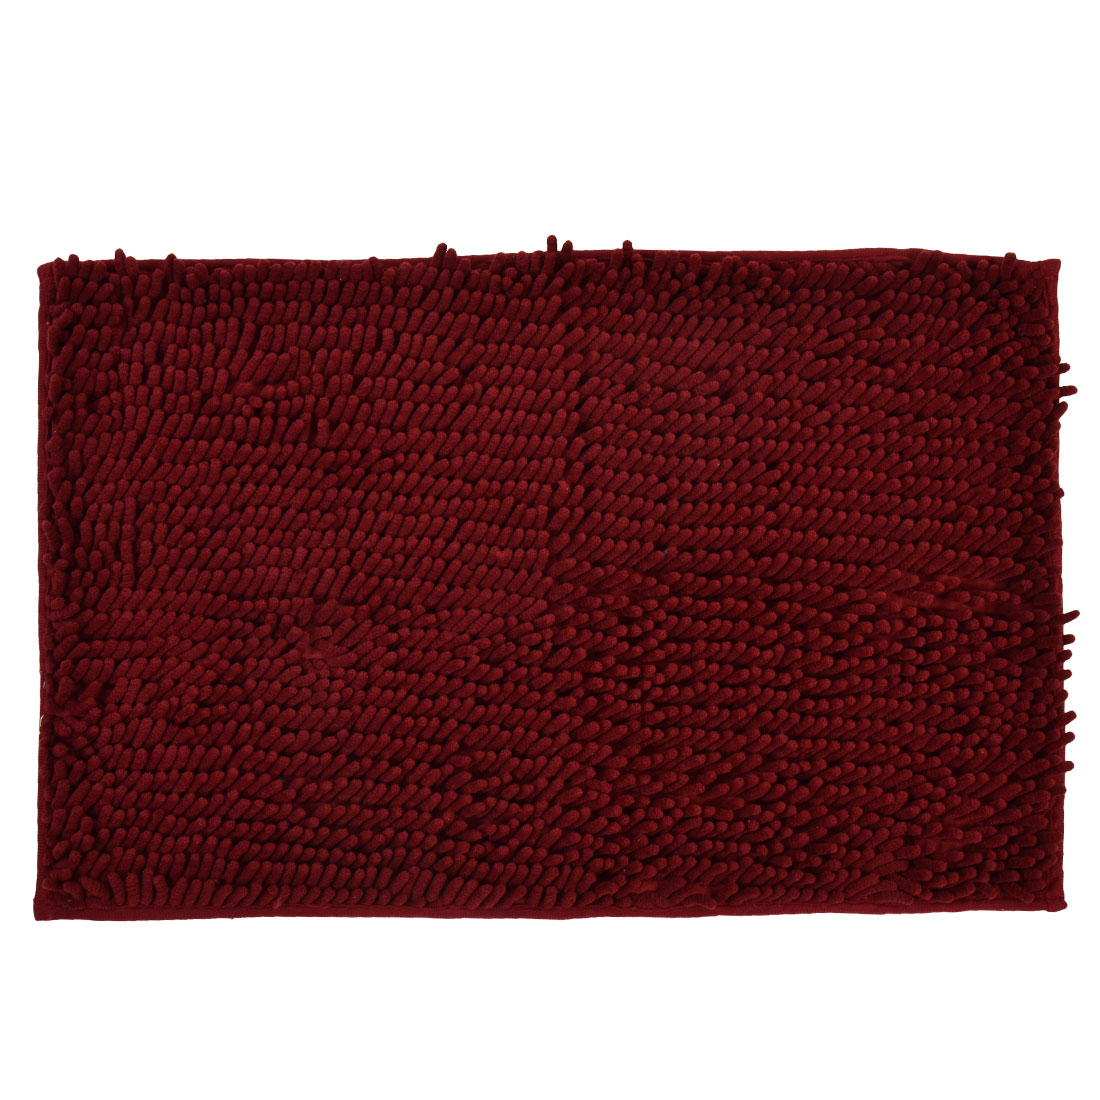 60cm x 40cm Wine Red Polyester Rectangle Absorbent Non-slip Pad Bath Mat Shower Rug